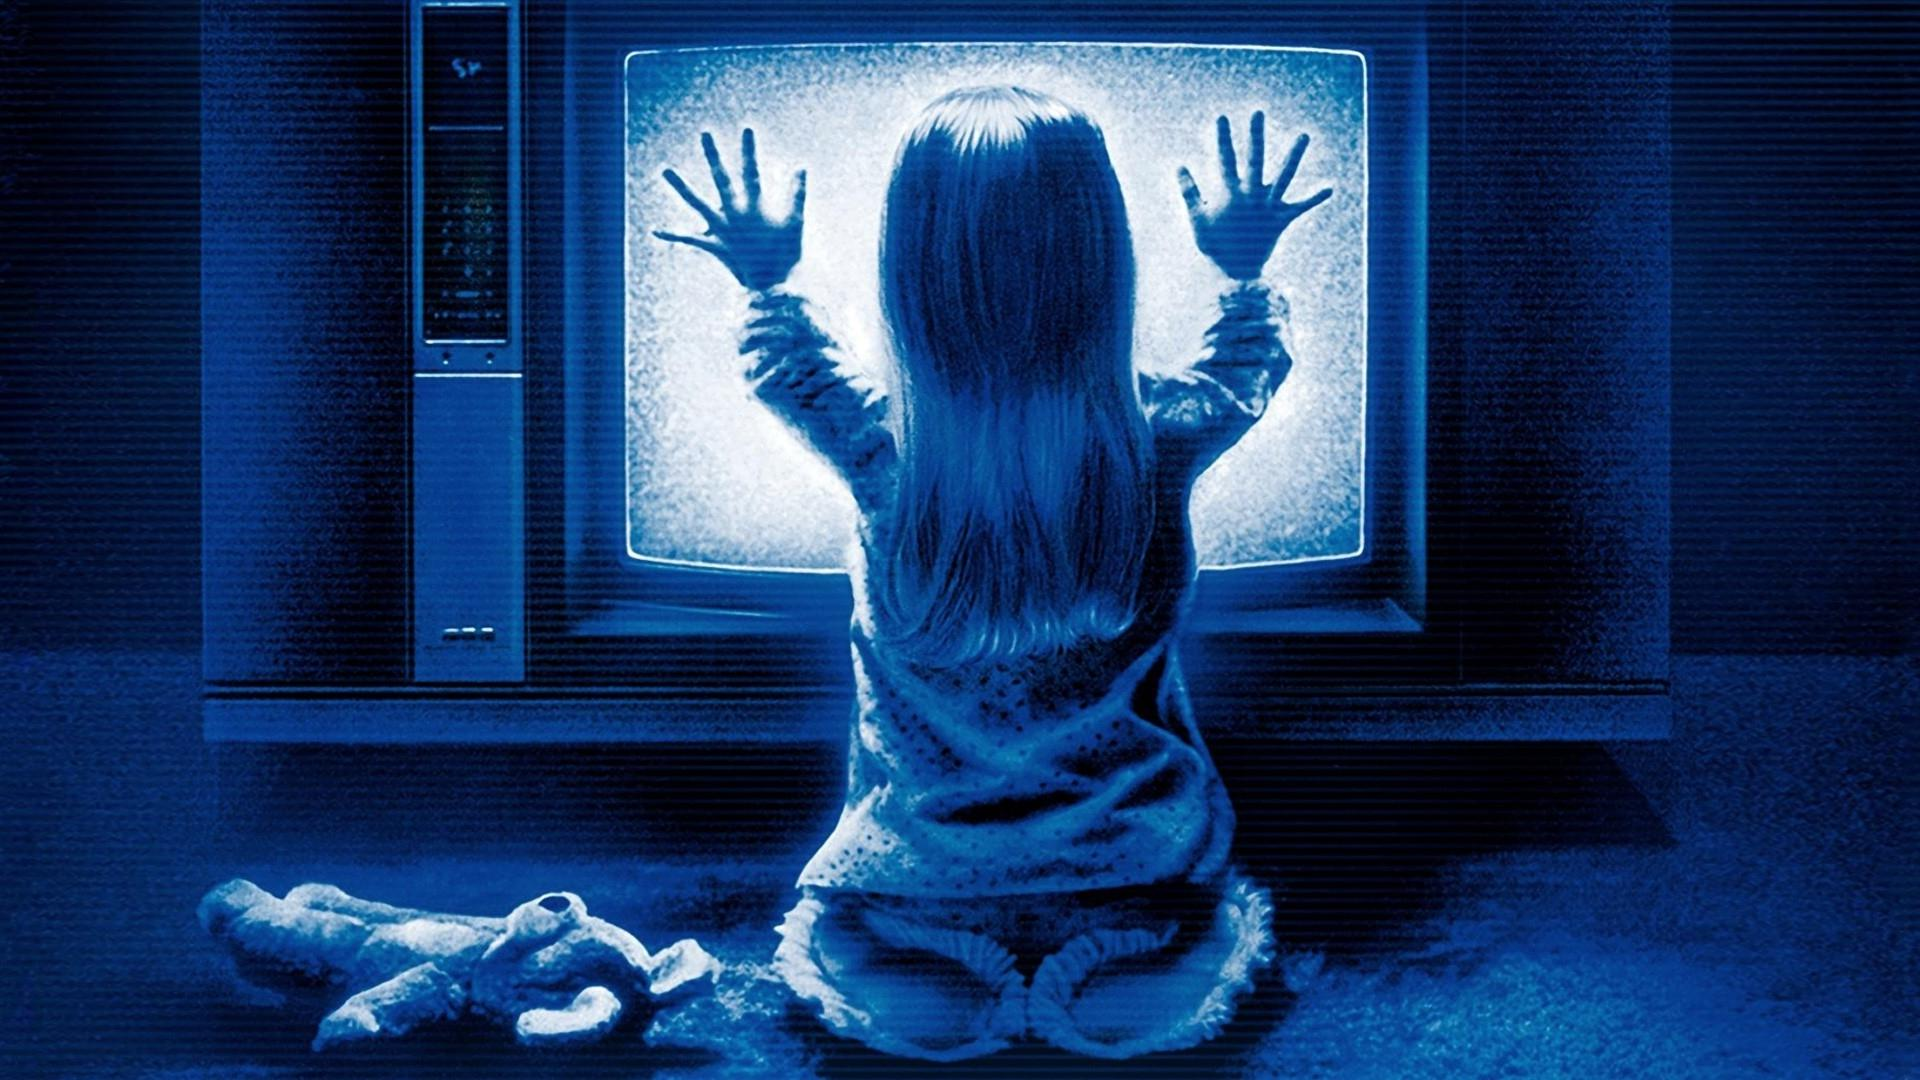 poltergeist_movie_horror_ghost_hd-wallpaper-11901341